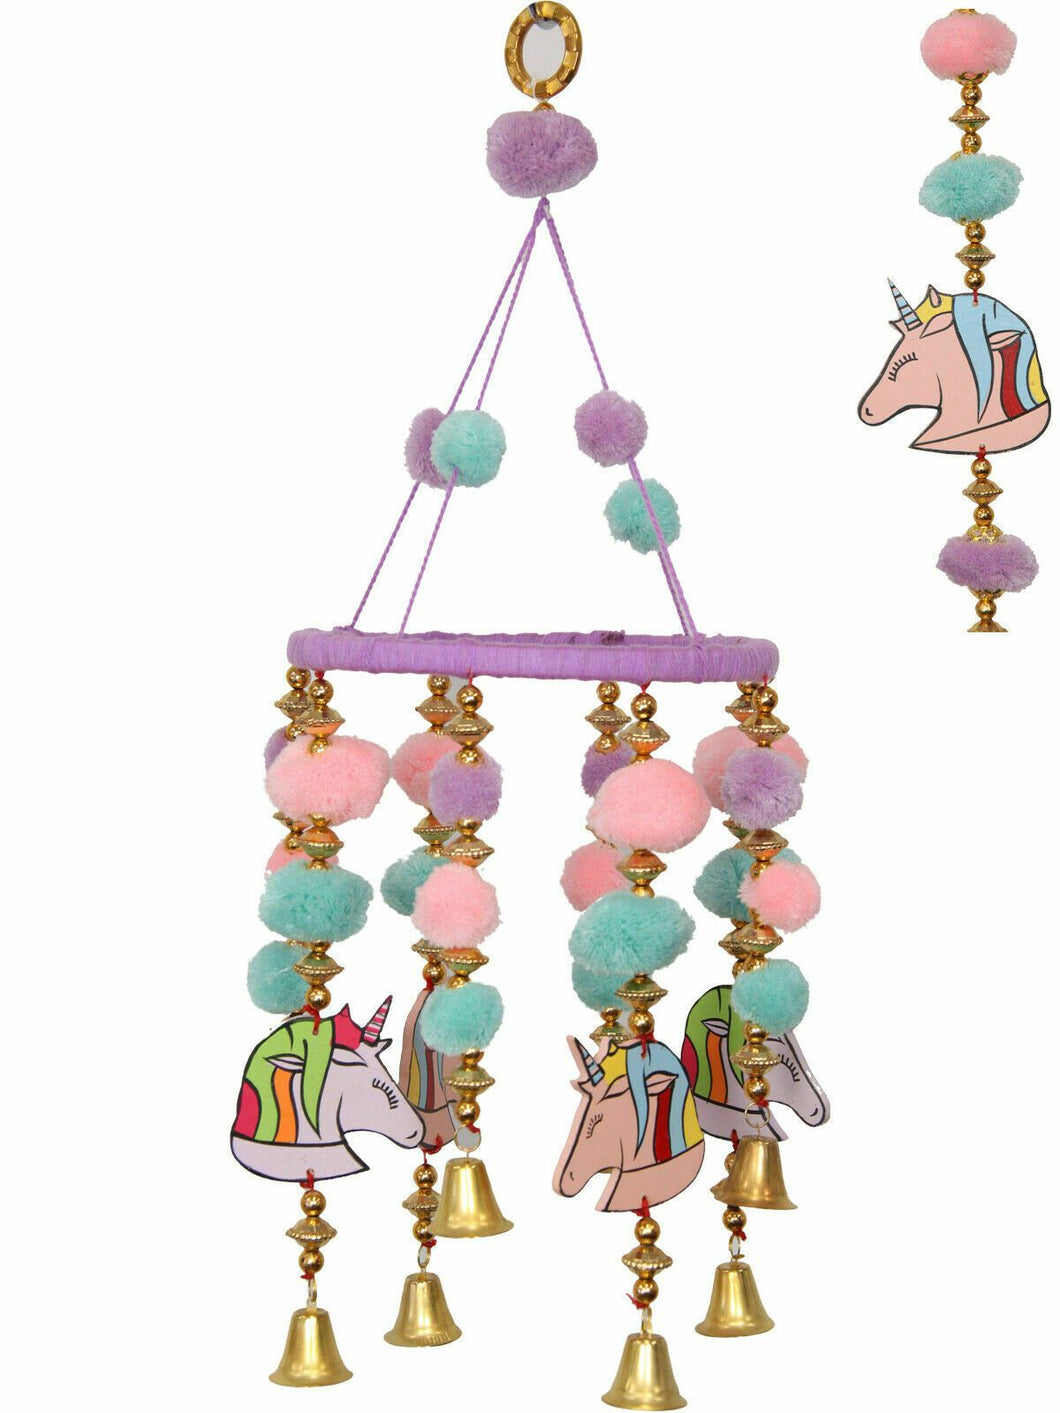 50cm Unicorn Pom Pom Mobile Wind Chime Brand New - Jungle Park Toys